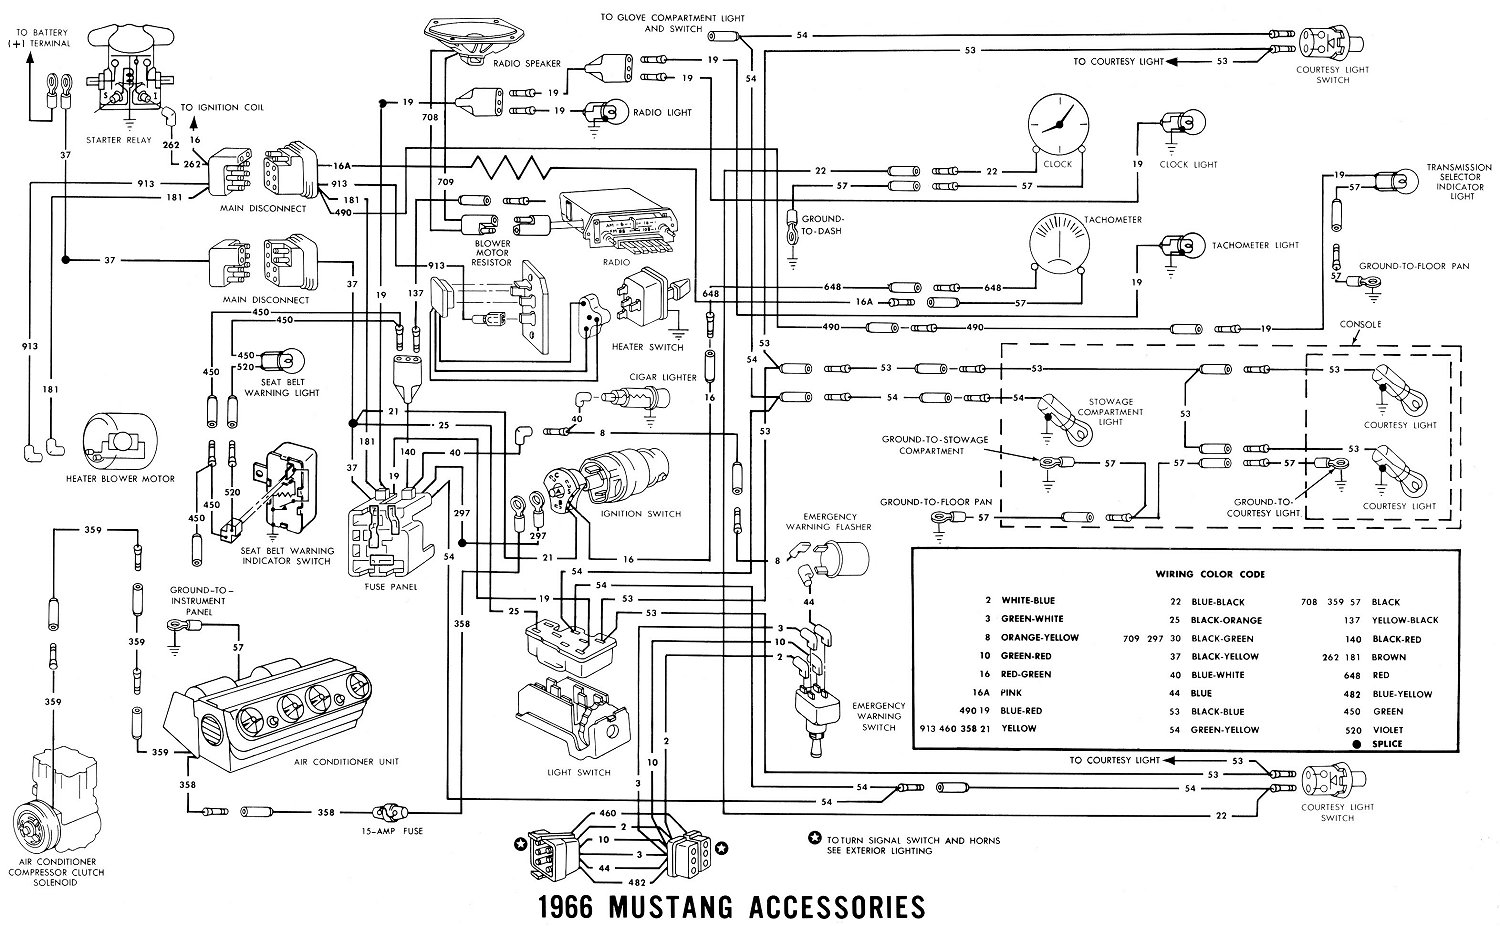 diagram] 1998 ford mustang wiring diagram full version hd quality wiring  diagram - schematictools.bellroma.it  bellroma.it